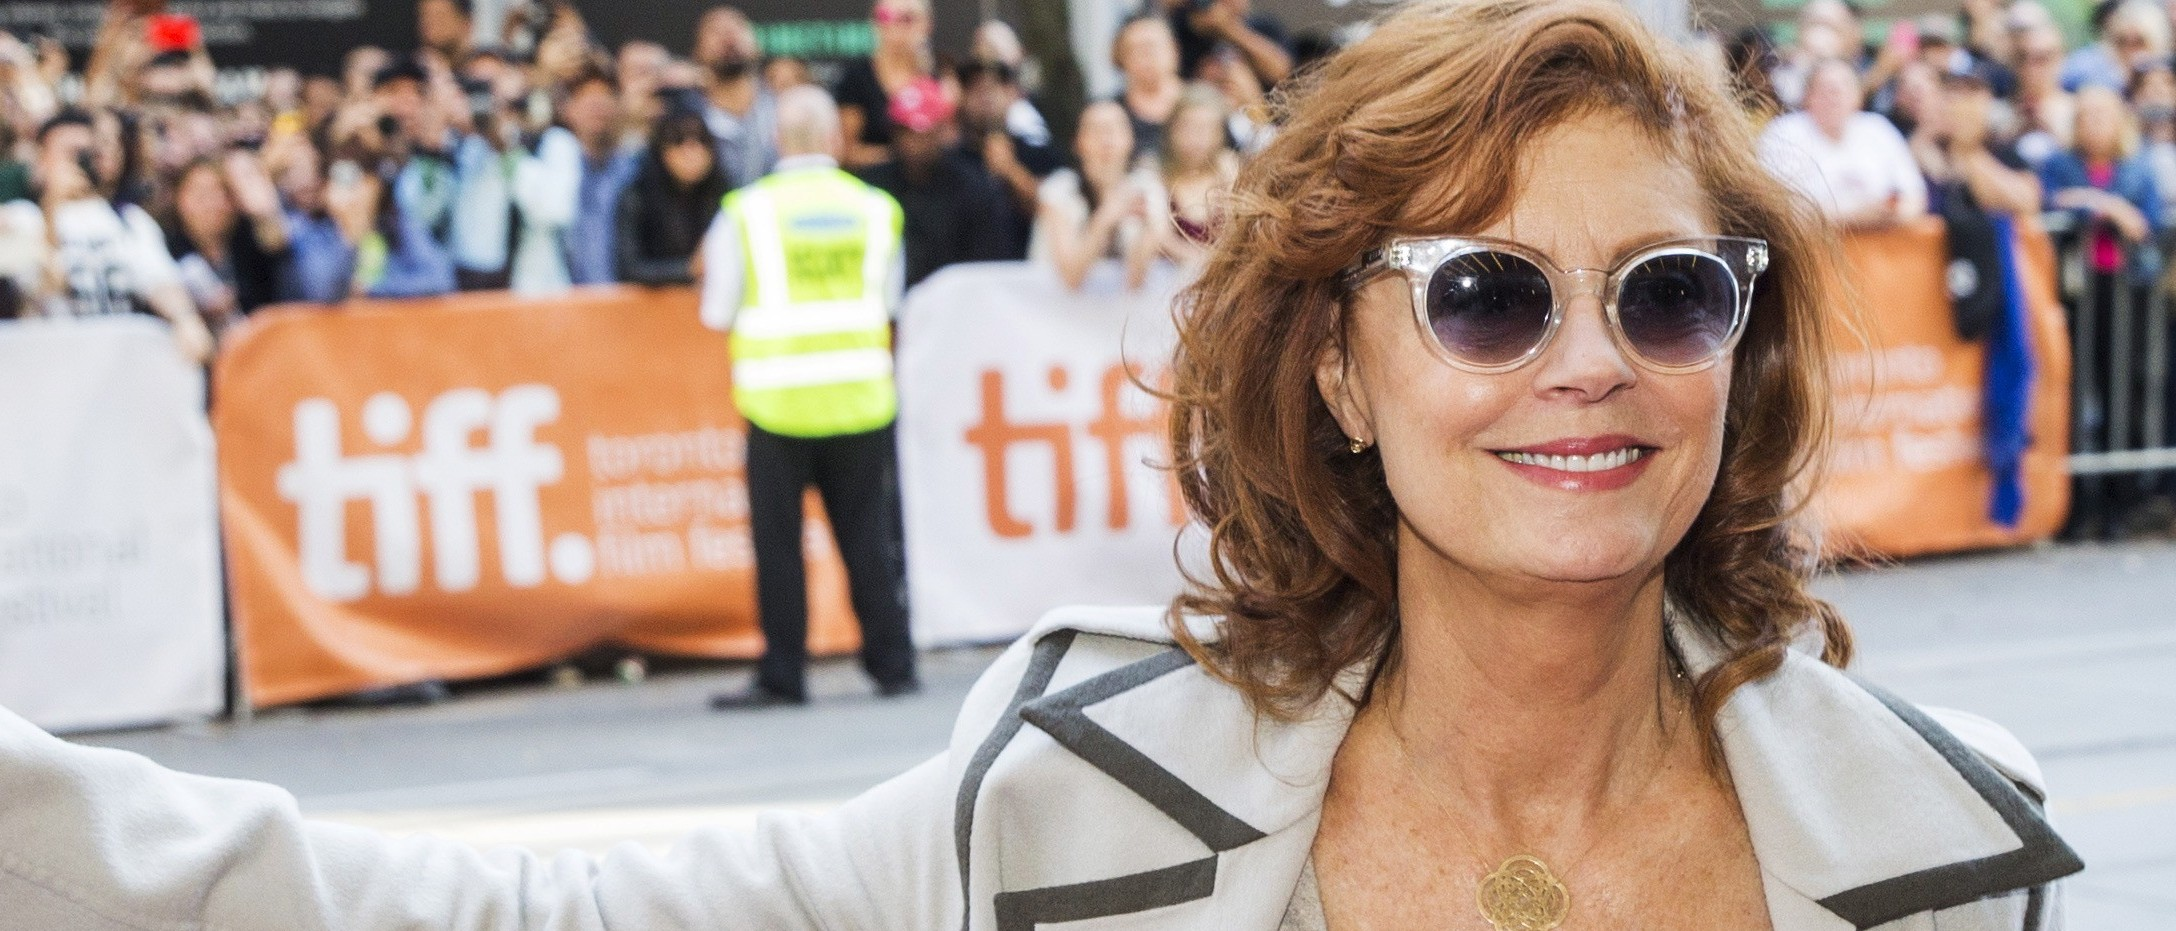 """Actress Susan Sarandon arrives on the red carpet for the film """"The Meddler"""" during the 40th Toronto International Film Festival in Toronto, Canada, September 14, 2015. TIFF runs from September 10-20. REUTERS/Mark Blinch - RTS1372"""